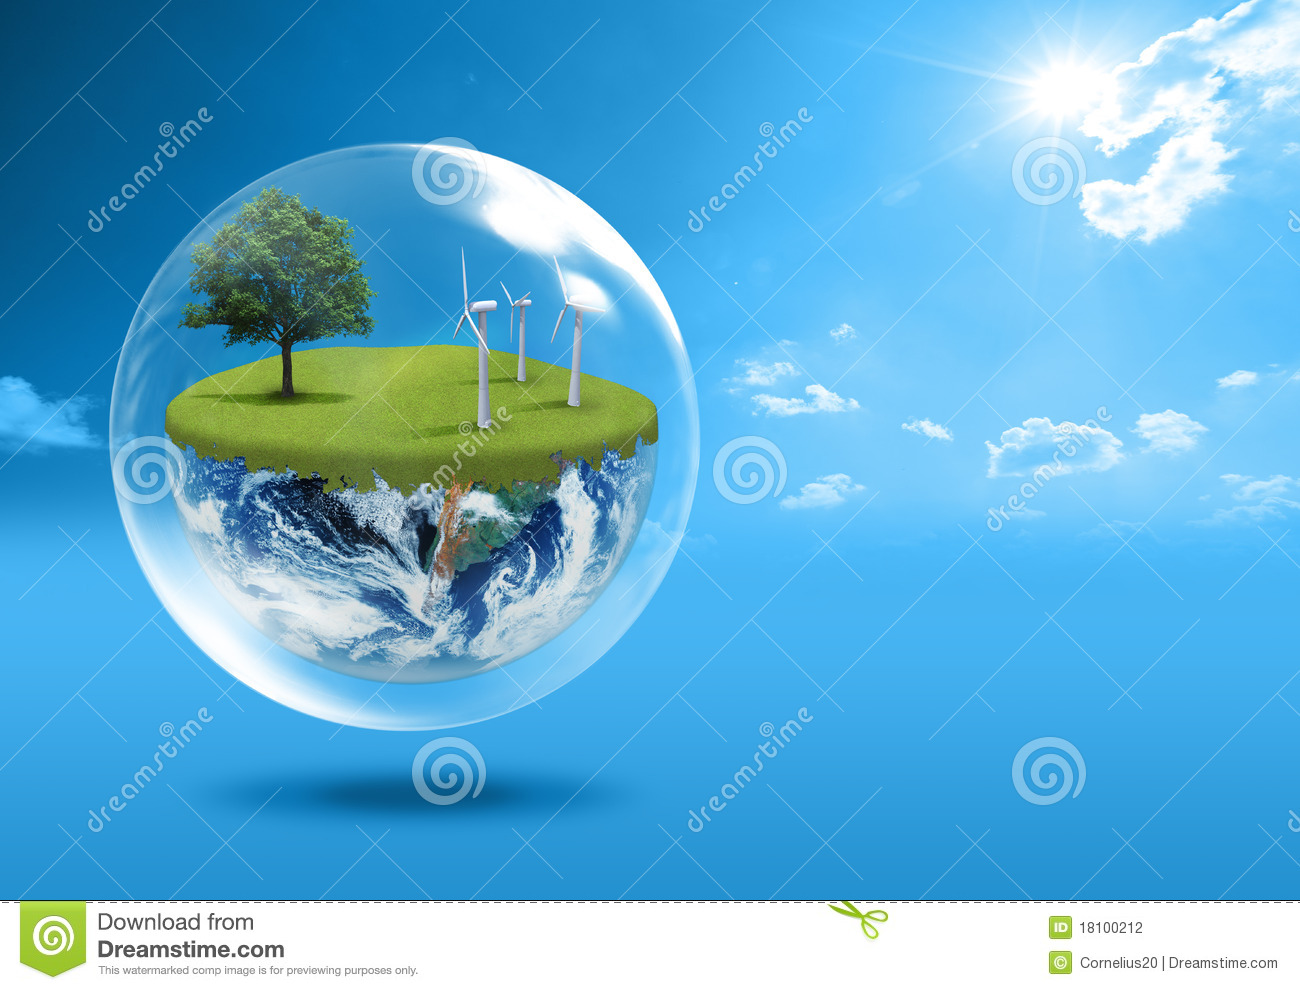 Green Earth Concept Stock Photography - Image: 18100212